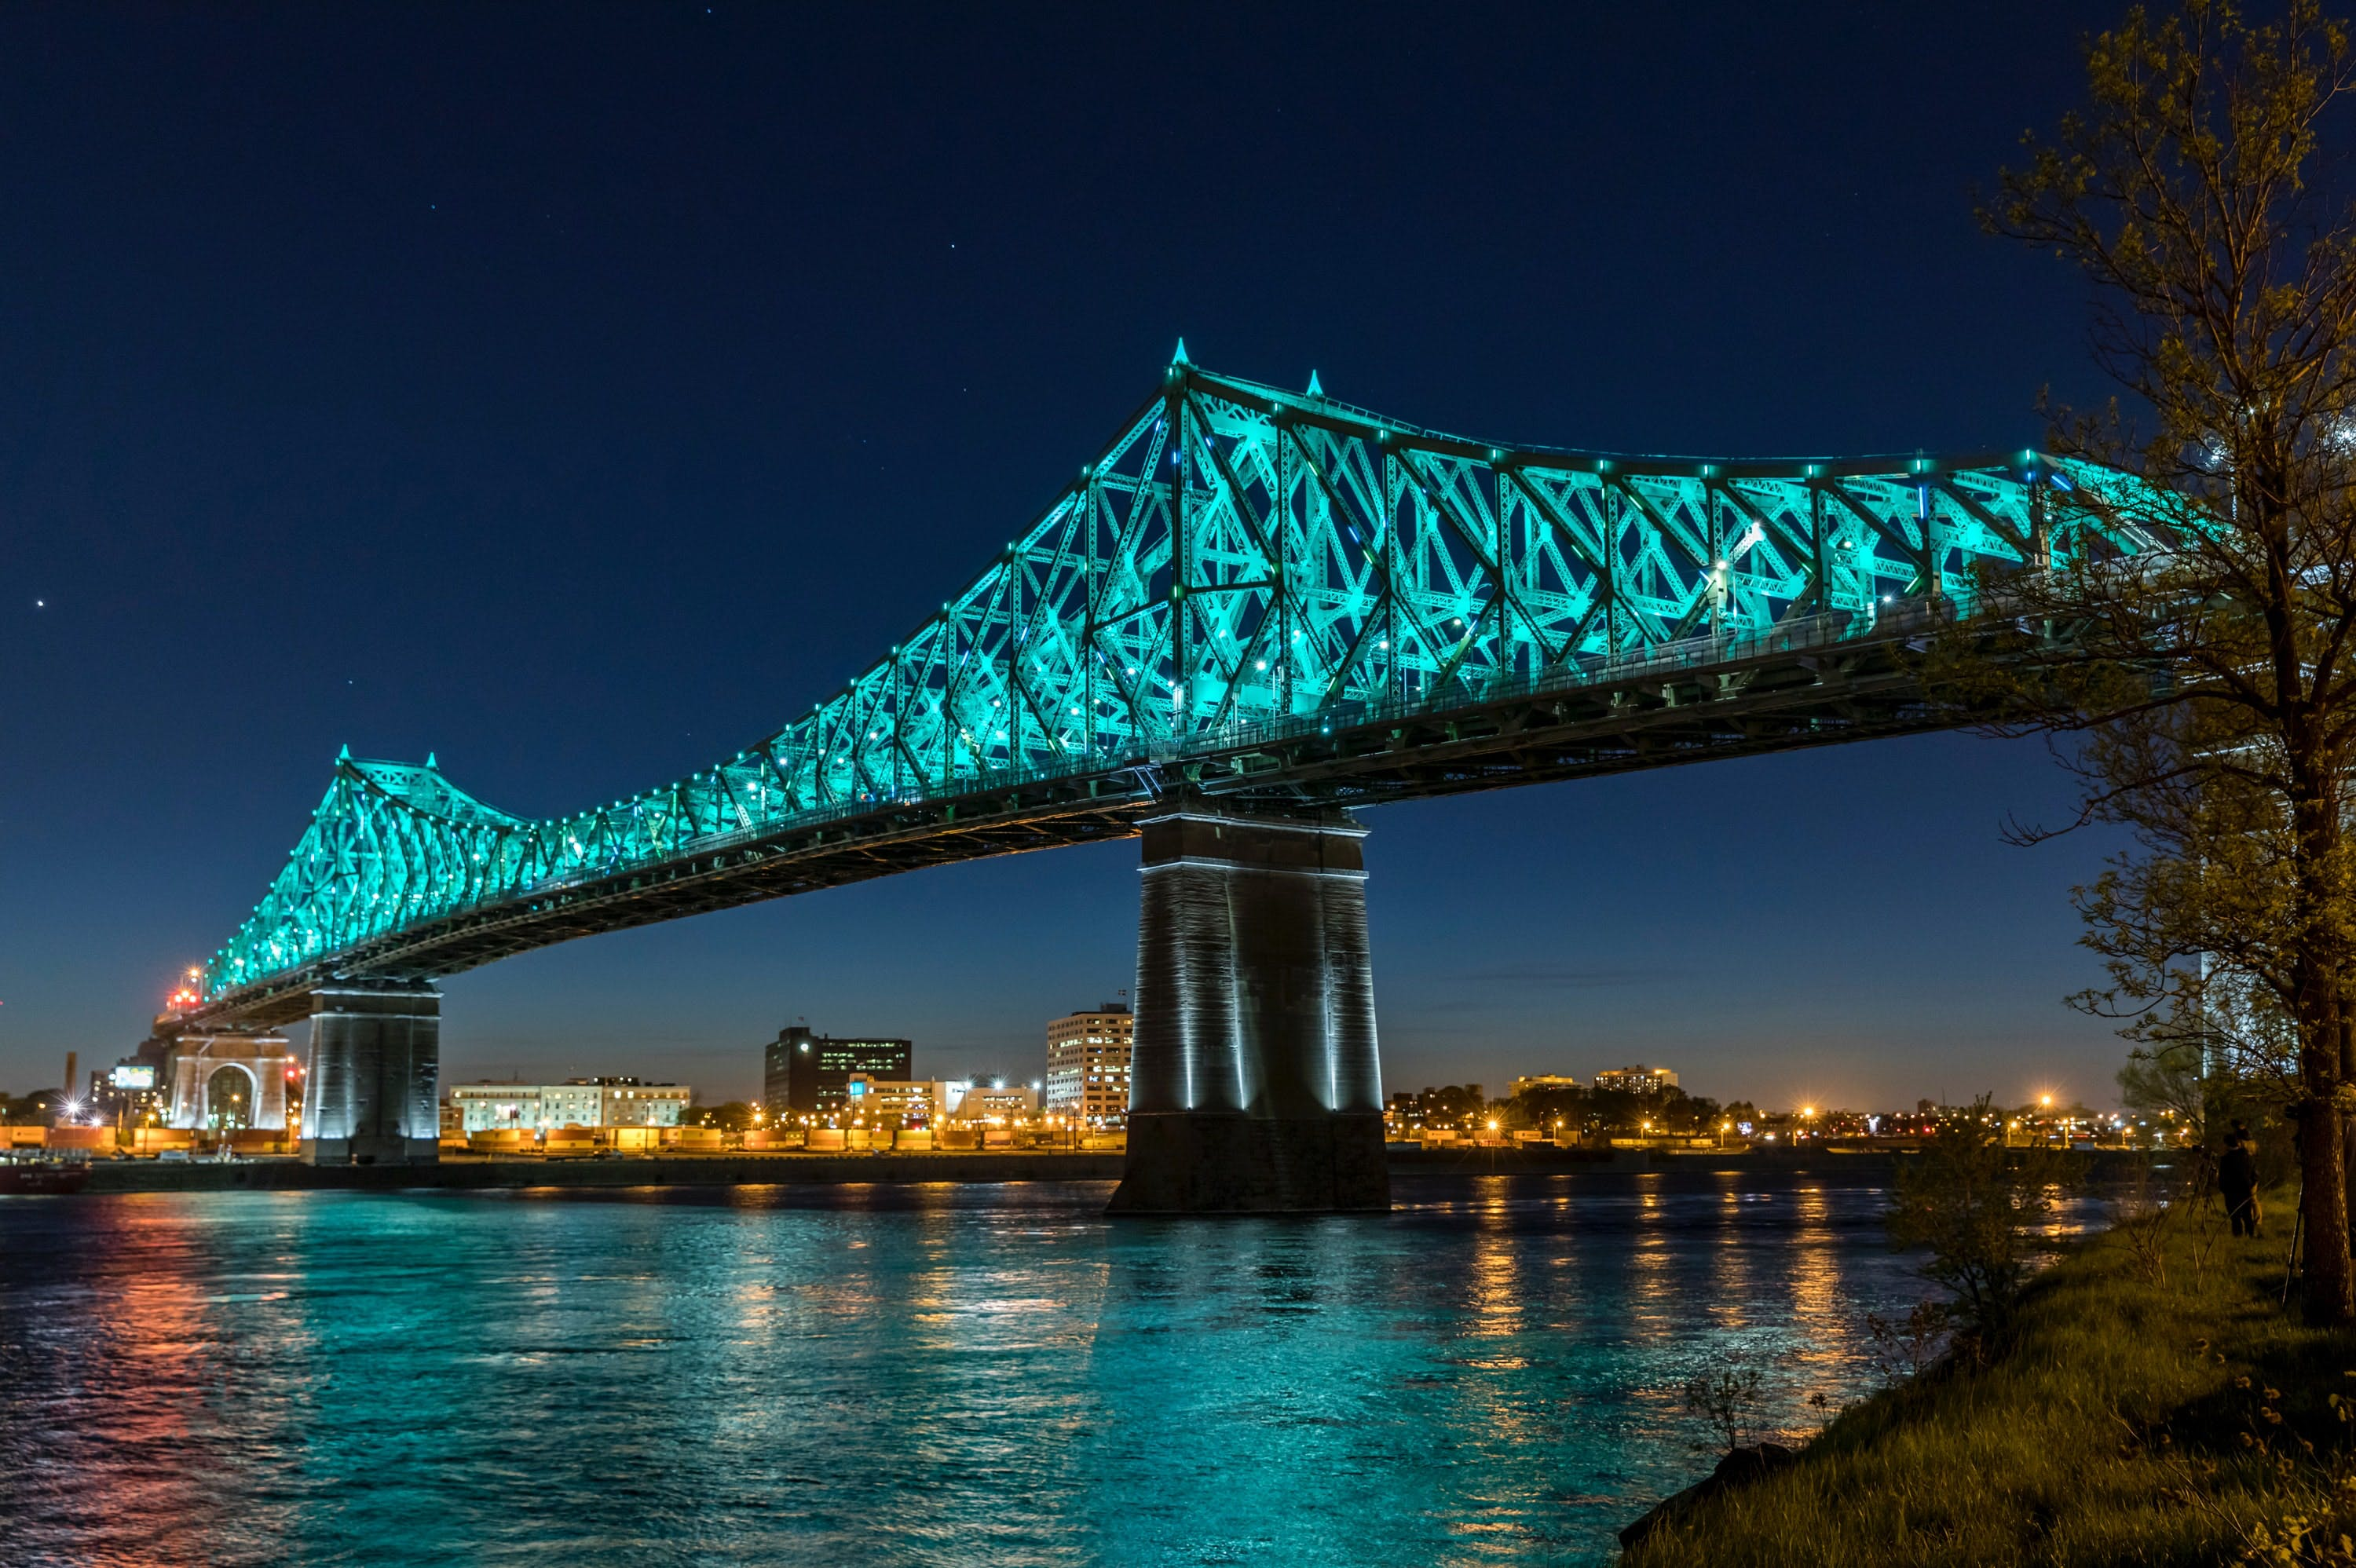 Jacques Cartier bridge at night